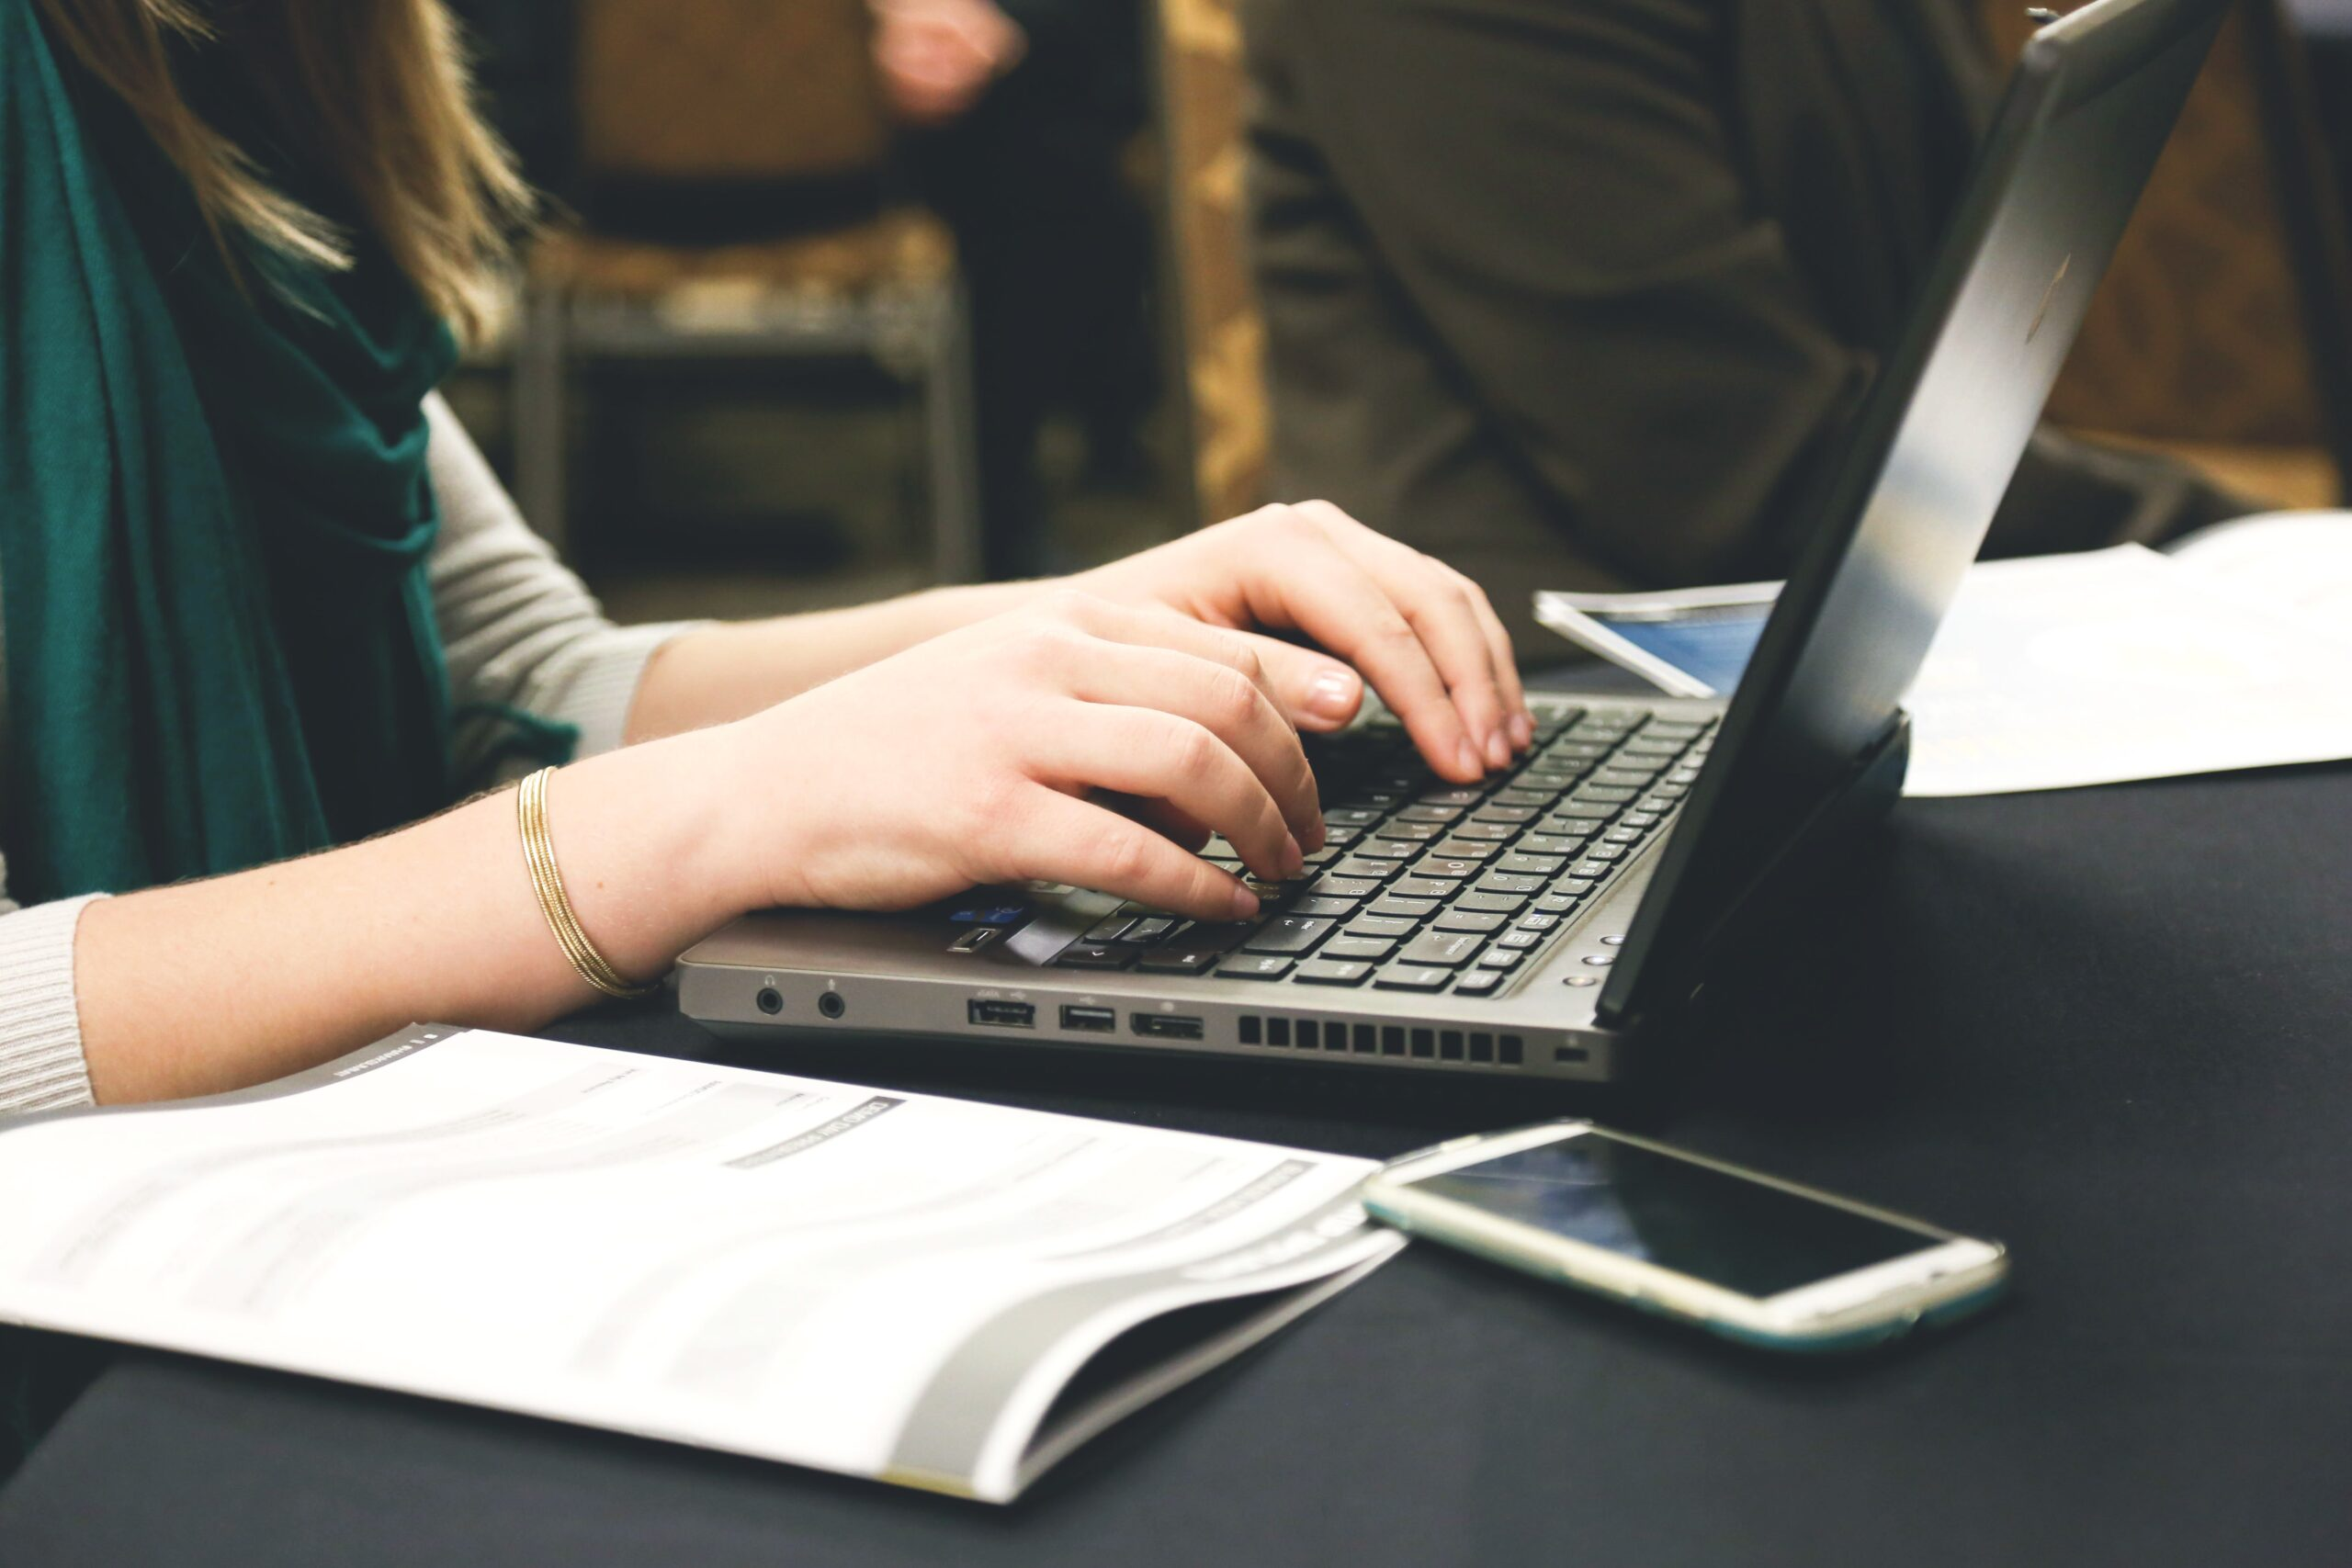 best 10-finger typing training sites and typing speed testing